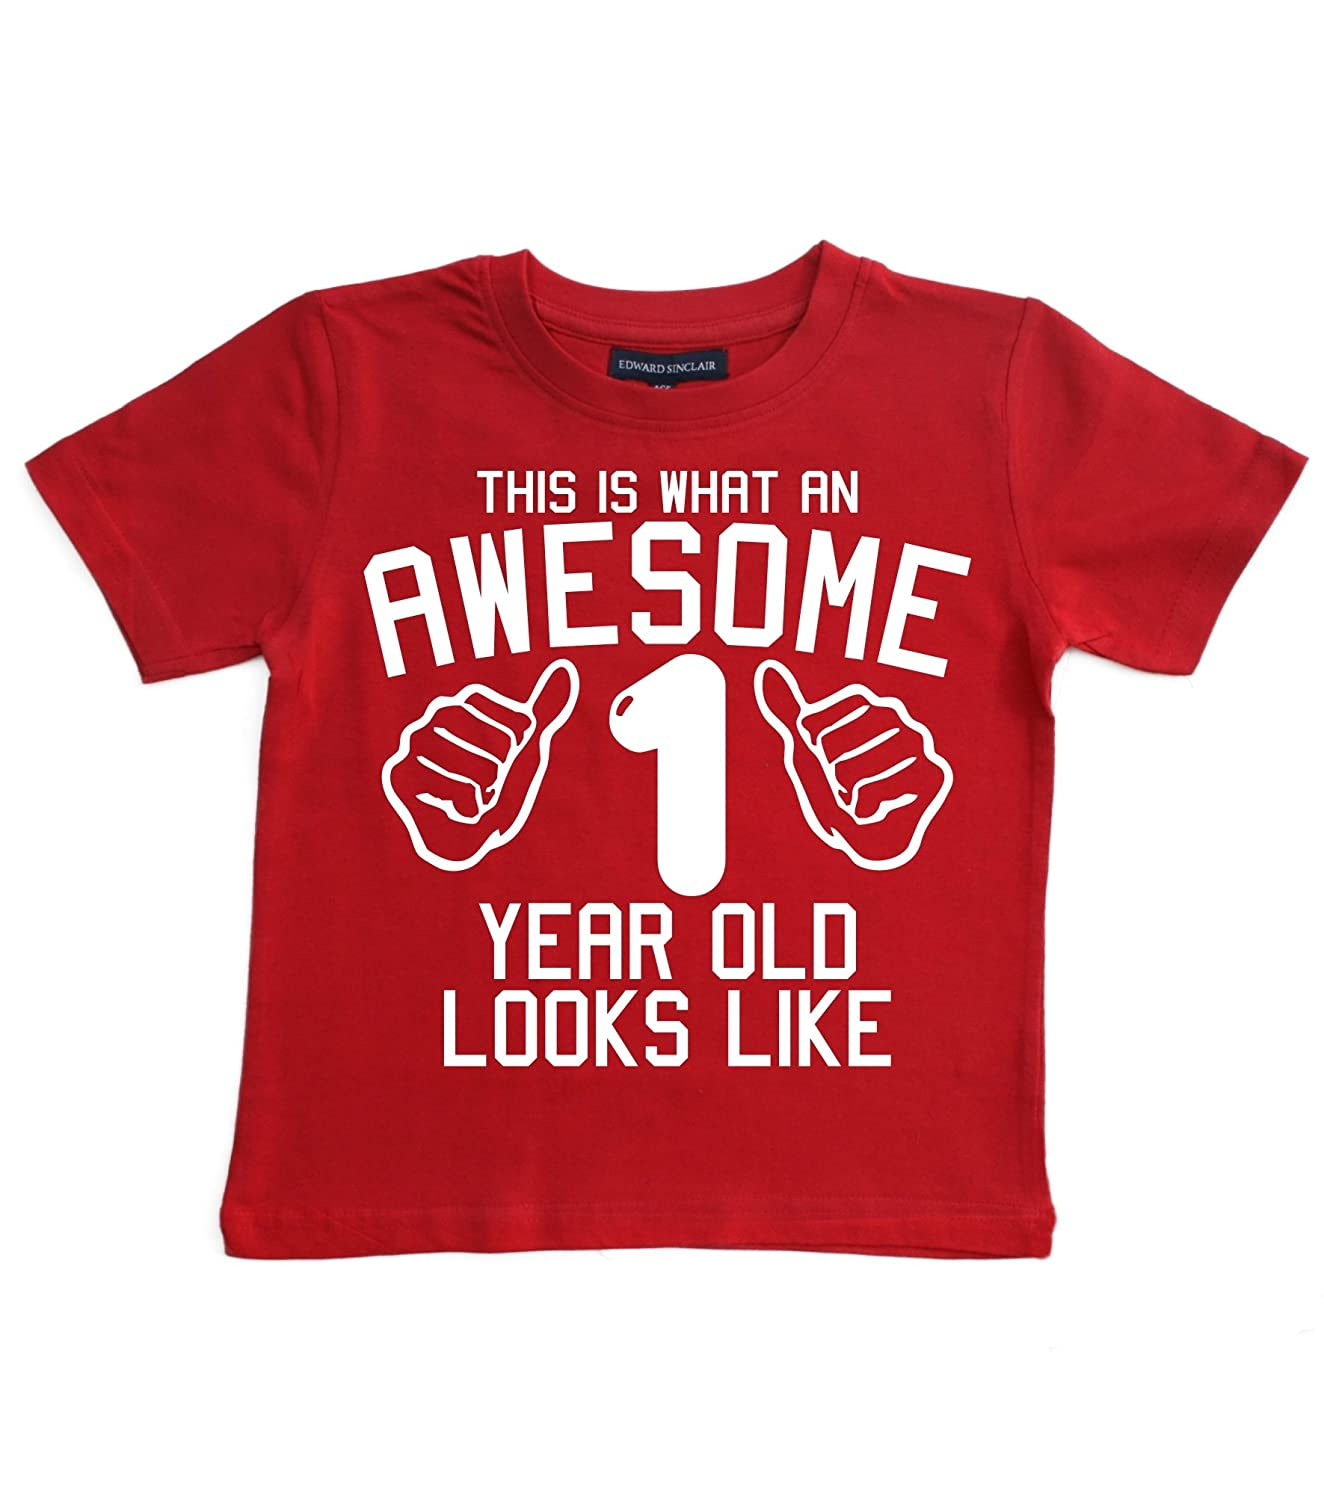 Edward Sinclair Baby Boys This What an Awesome Looks Like T-Shirt